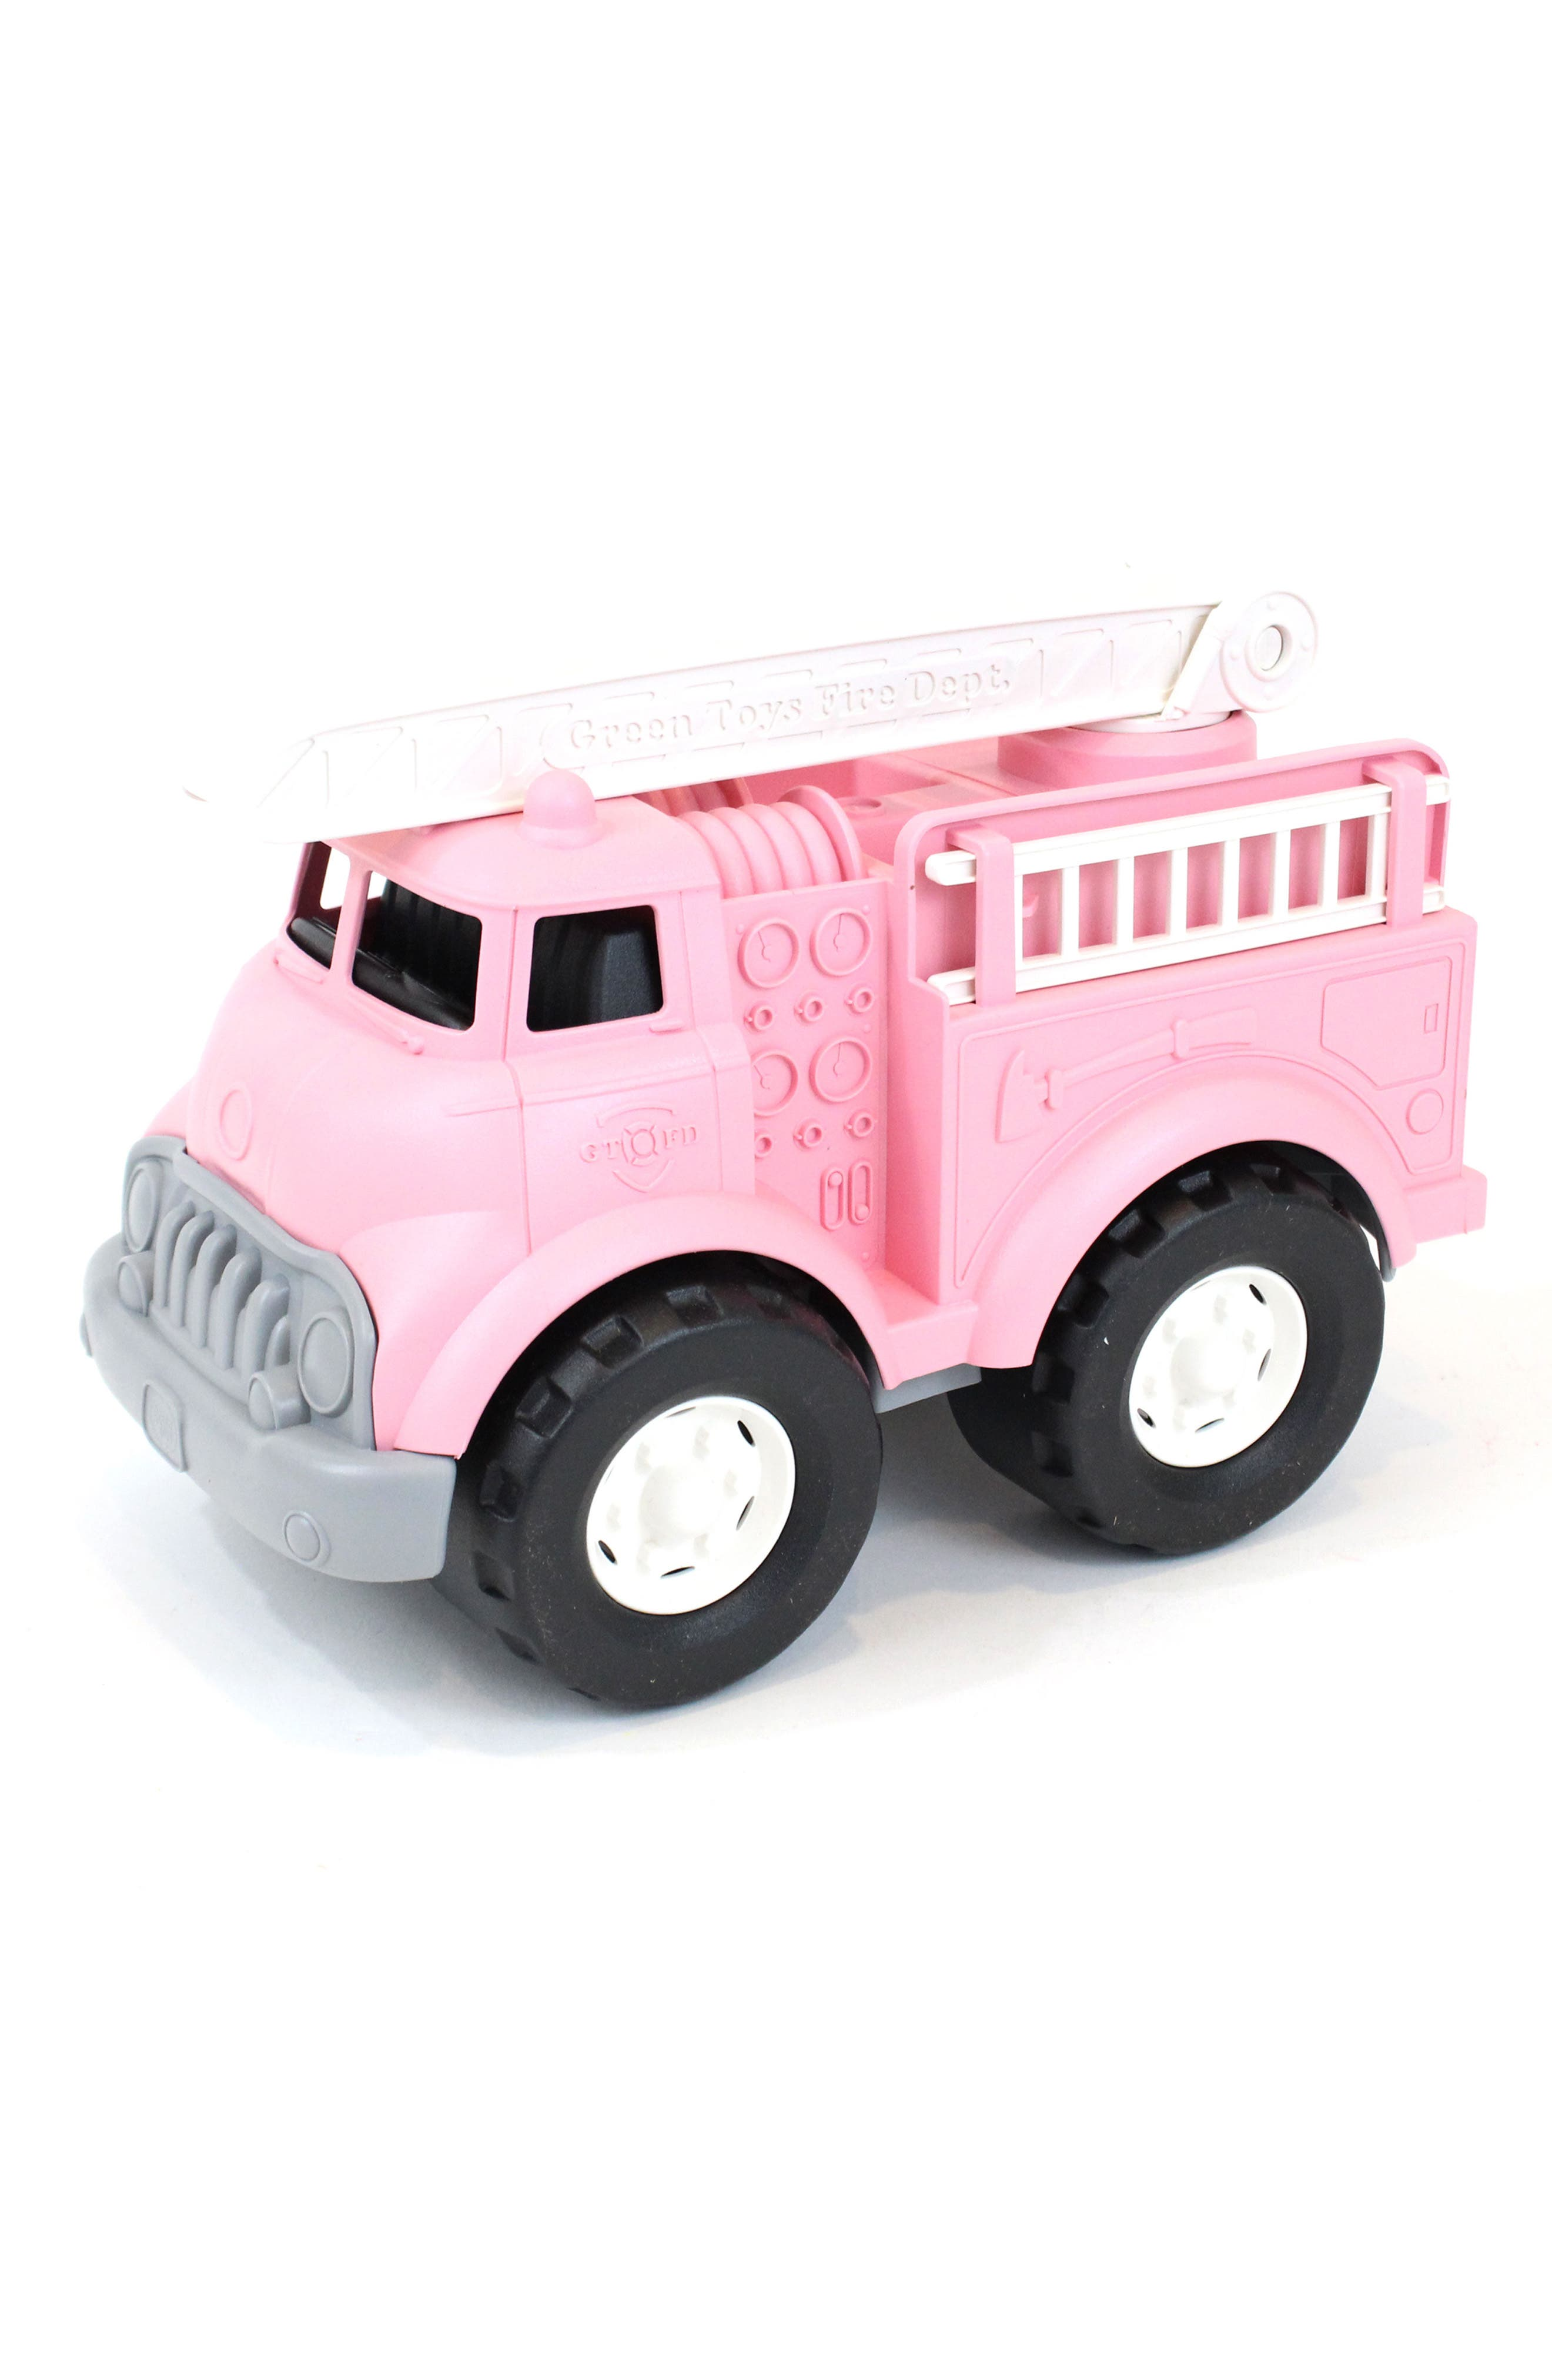 Green Toys Fire Truck Toy